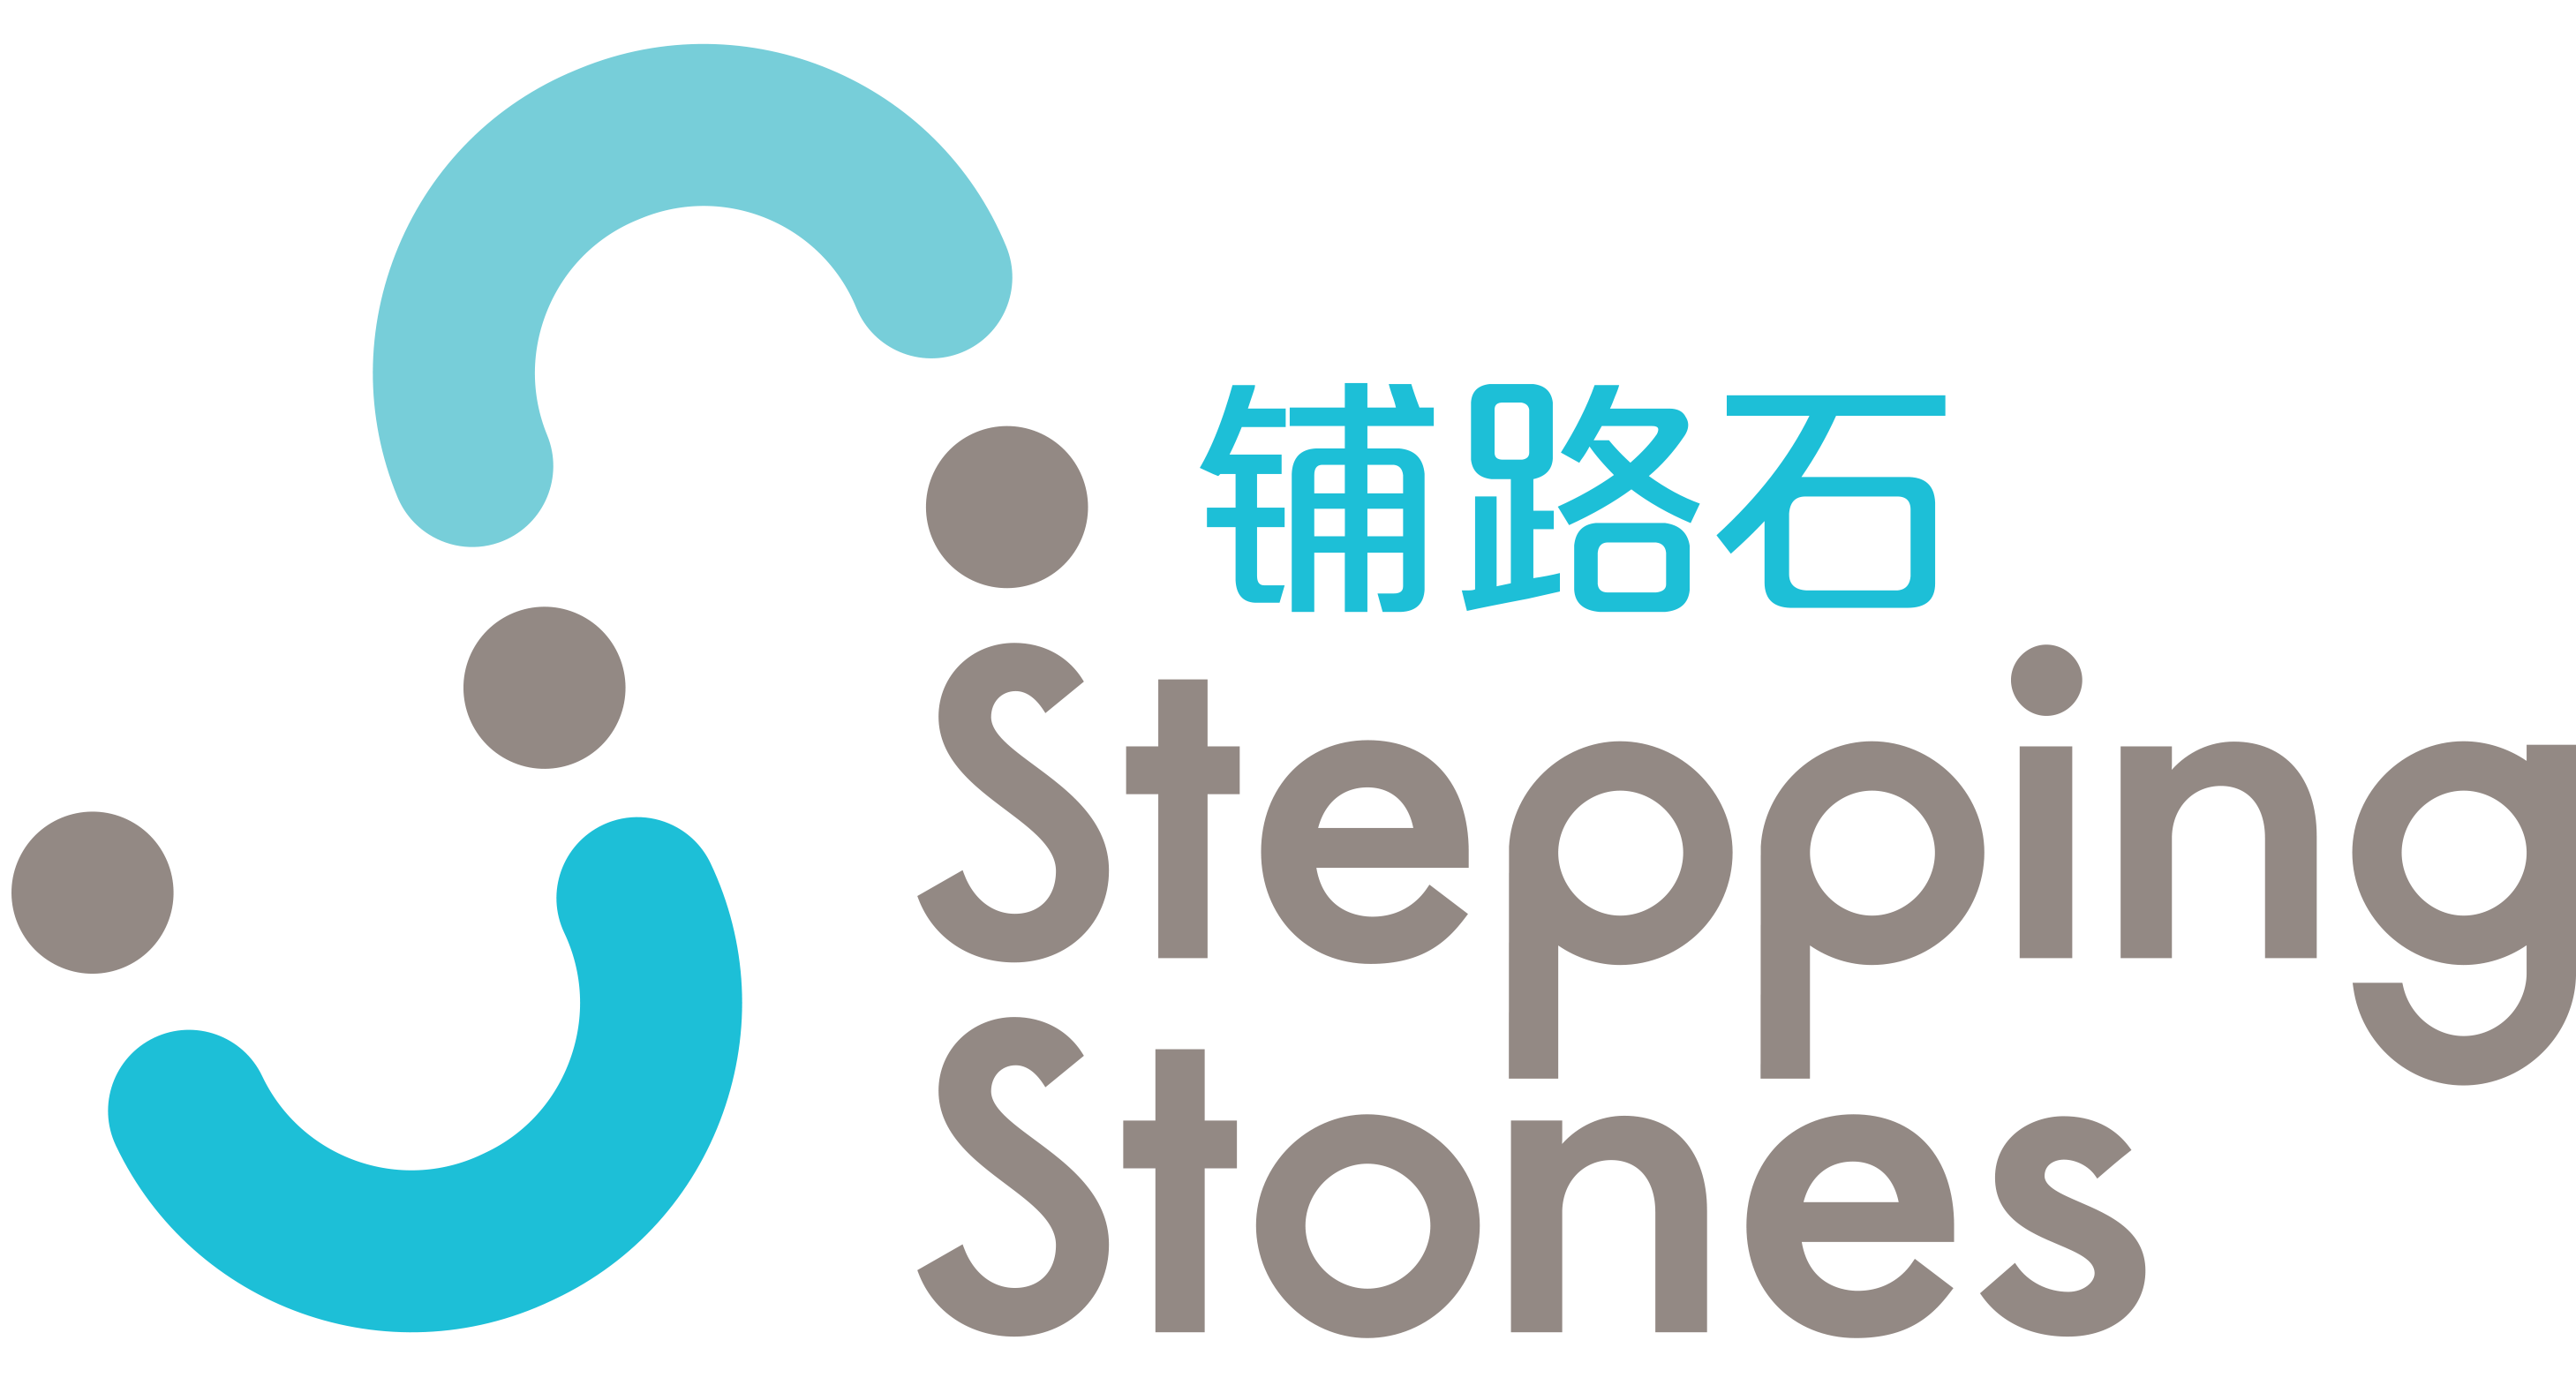 铺路石 Stepping Stones China